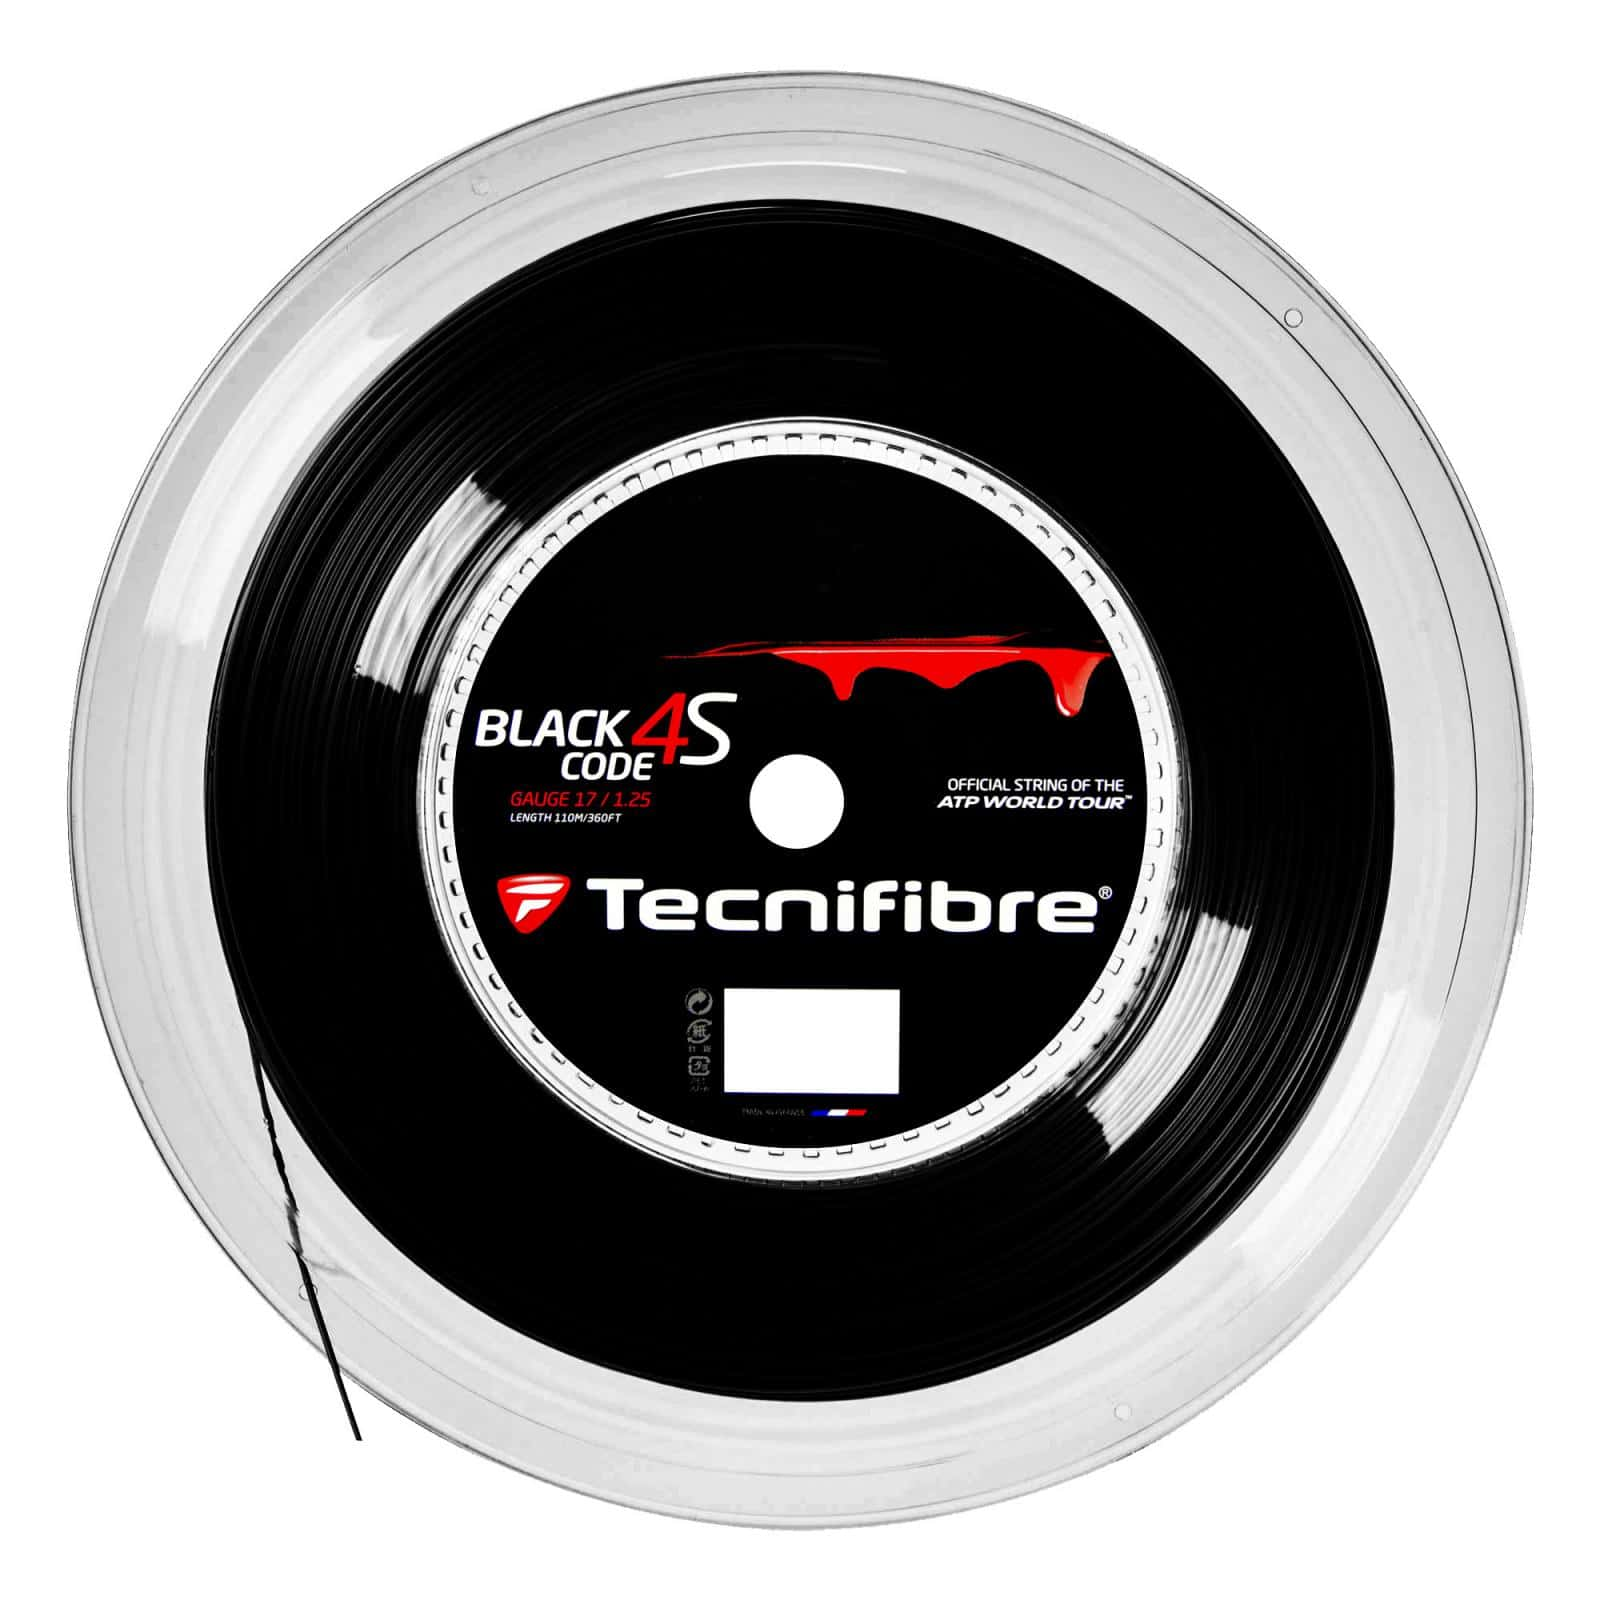 Technifibre 4s First Thoughts